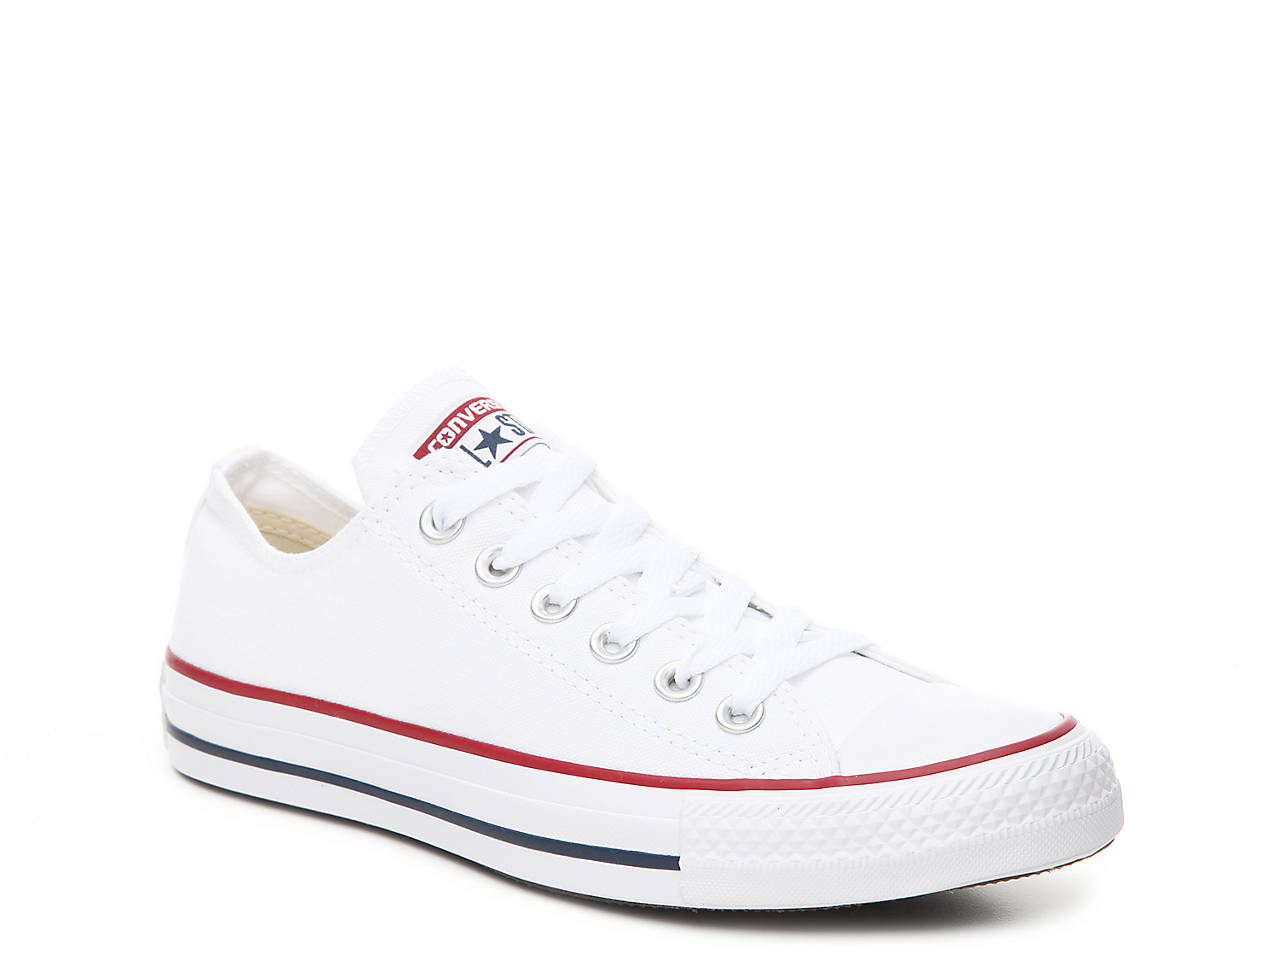 7dcf9b6bb1d8b7 Converse All-Star High Tops   Sneakers